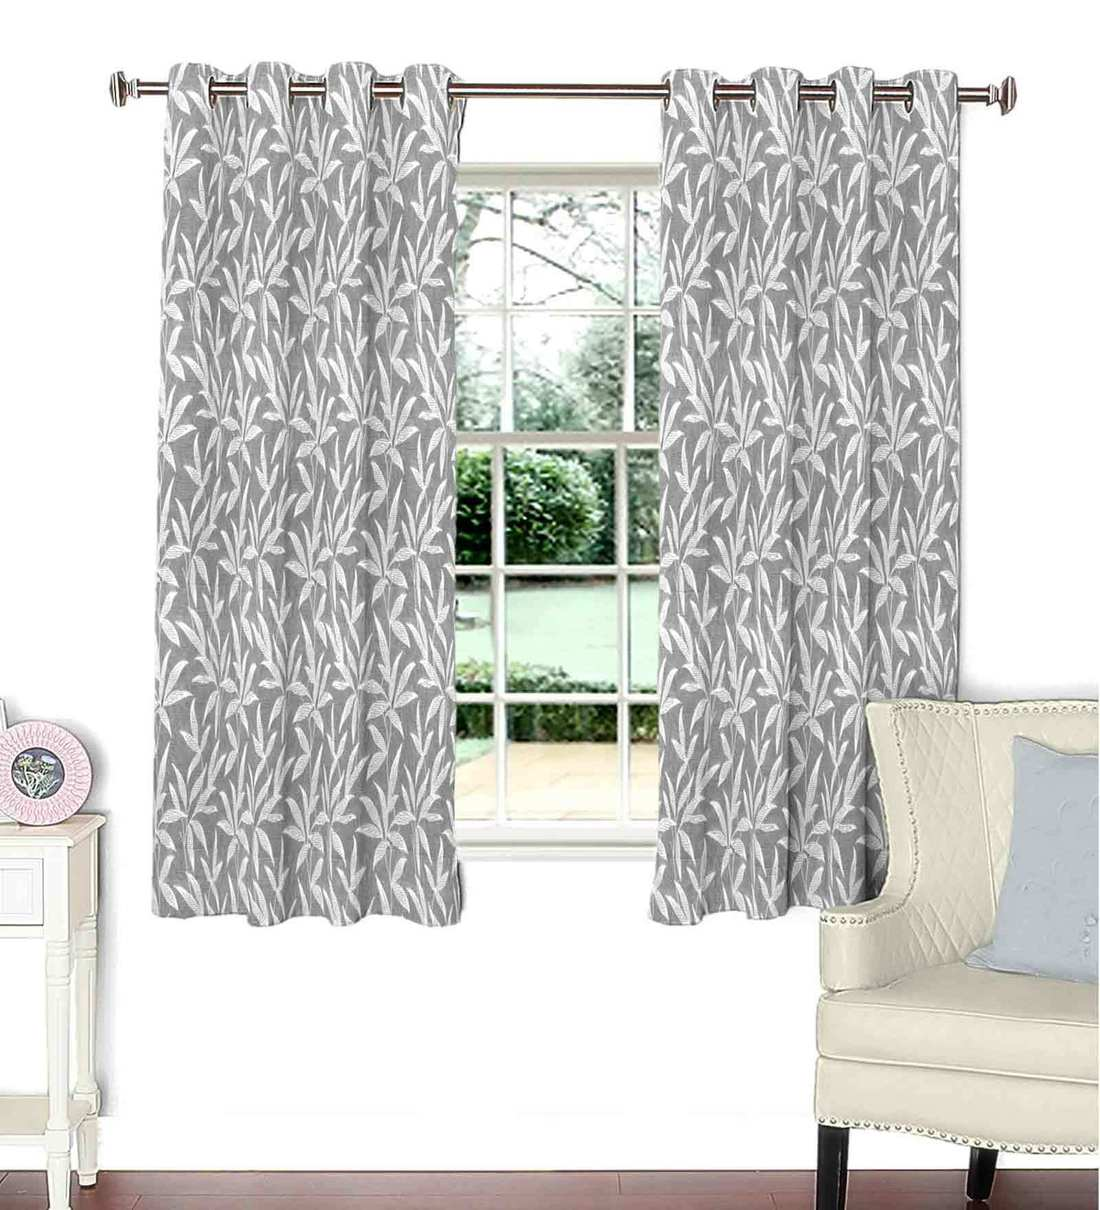 Buy Grey Polyester Floral Window Curtains 44 X 60 Inches By Skipper Online Floral Window Curtains Furnishings Home Decor Pepperfry Product